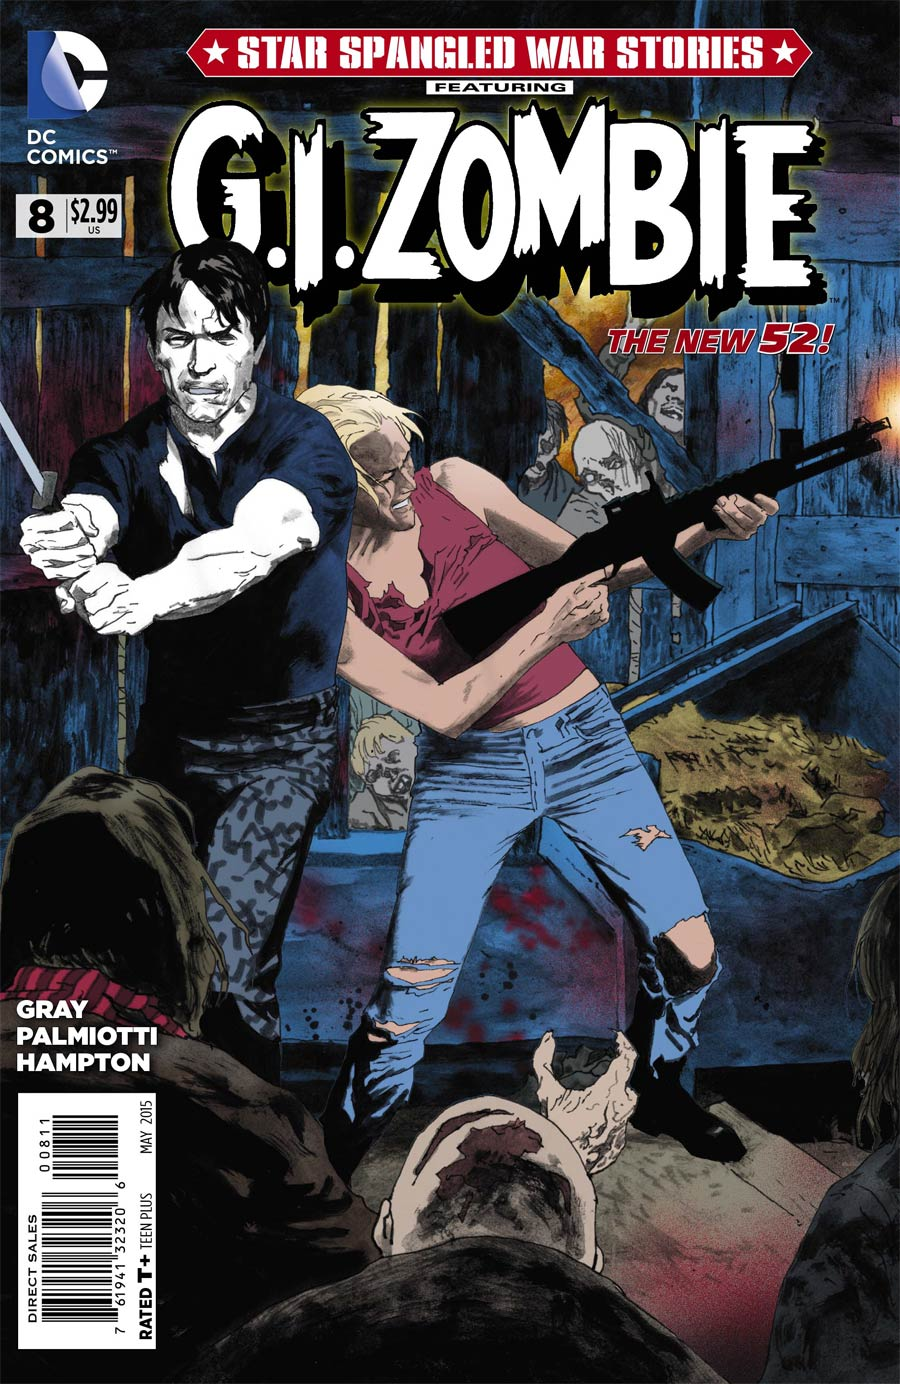 Star-Spangled War Stories Featuring GI Zombie #8